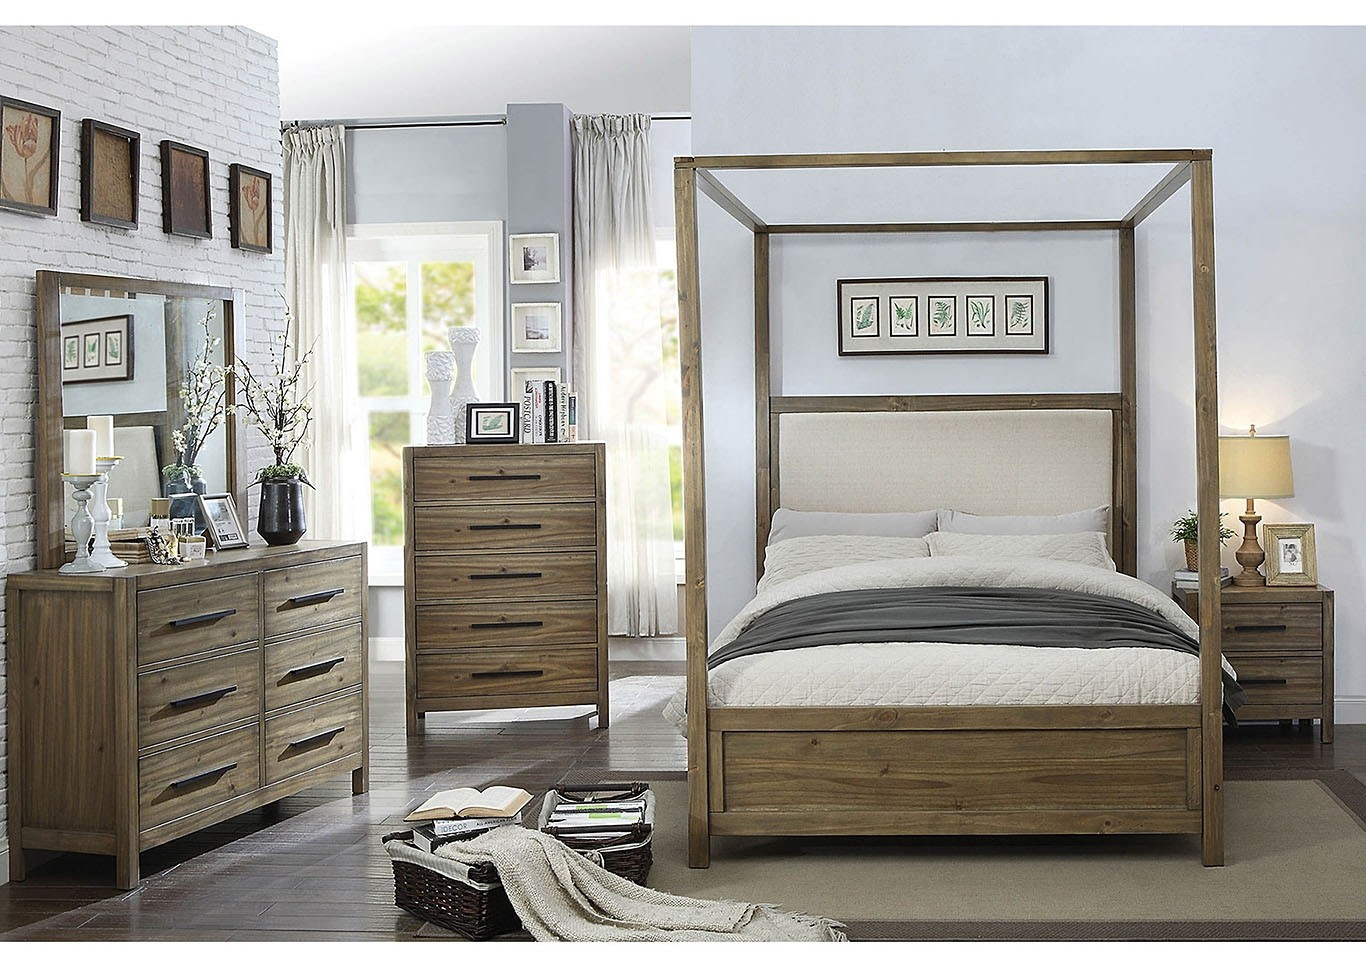 Garland Canopy Bedroom Set in Oak and Cream by Furniture ...